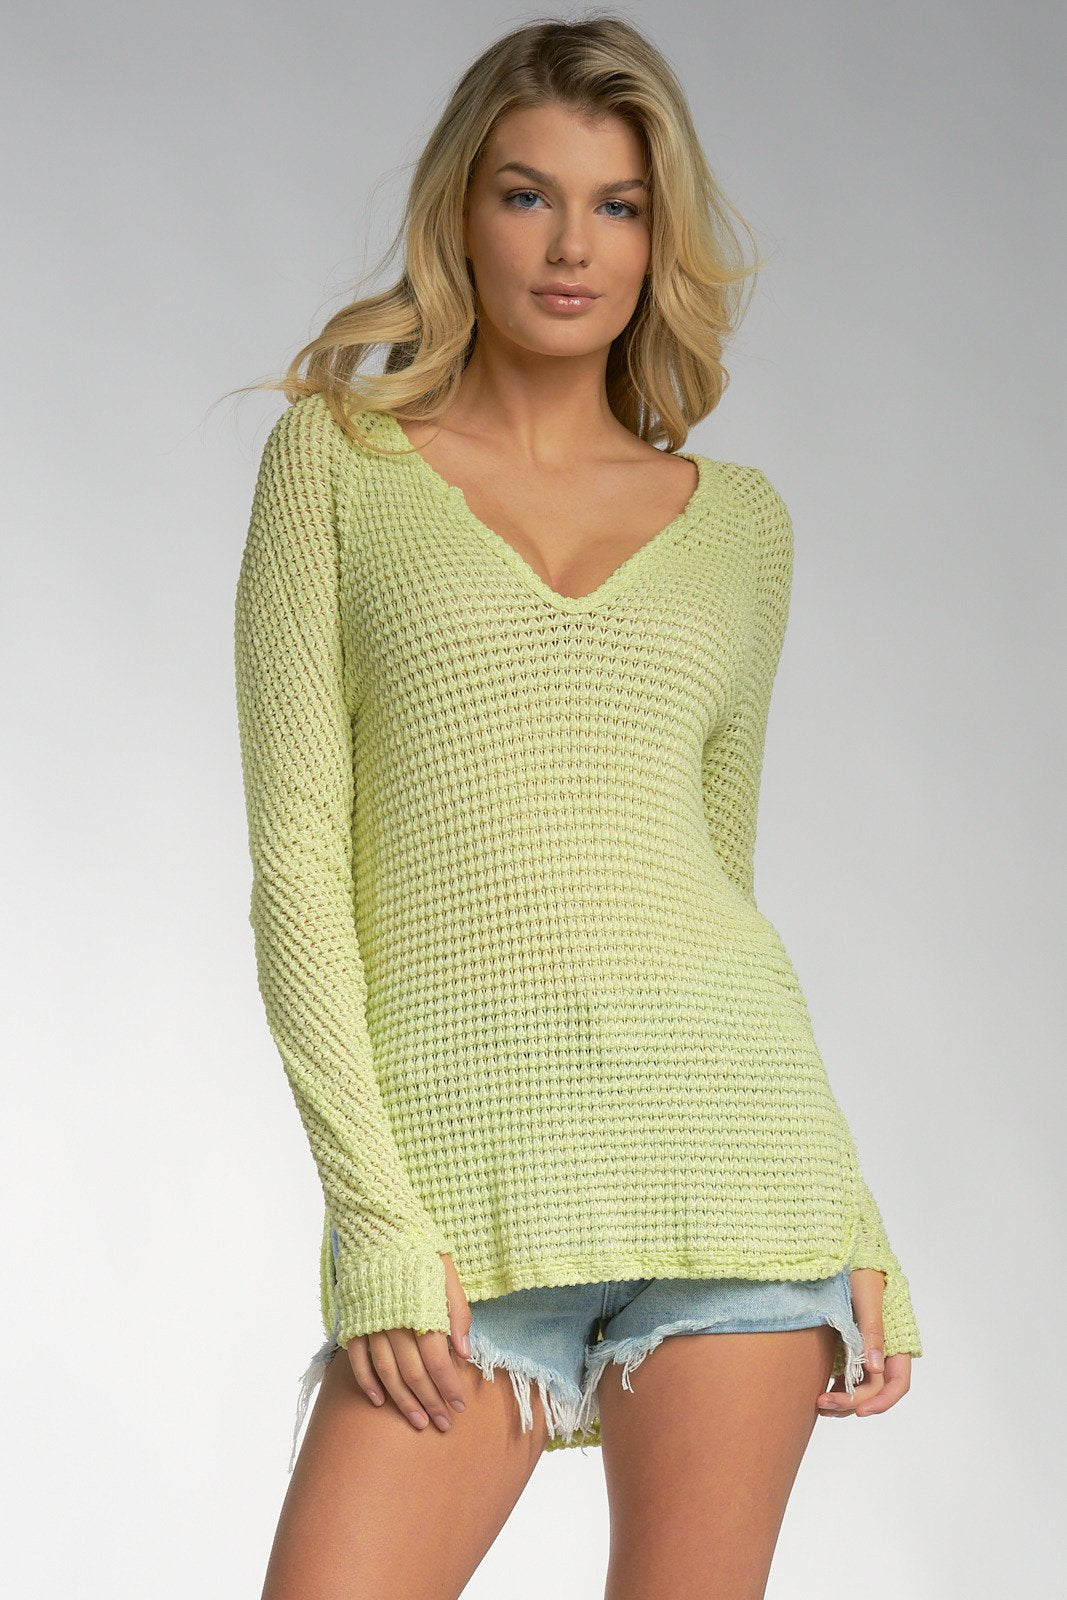 Seafoam Green Long Sleeve Top